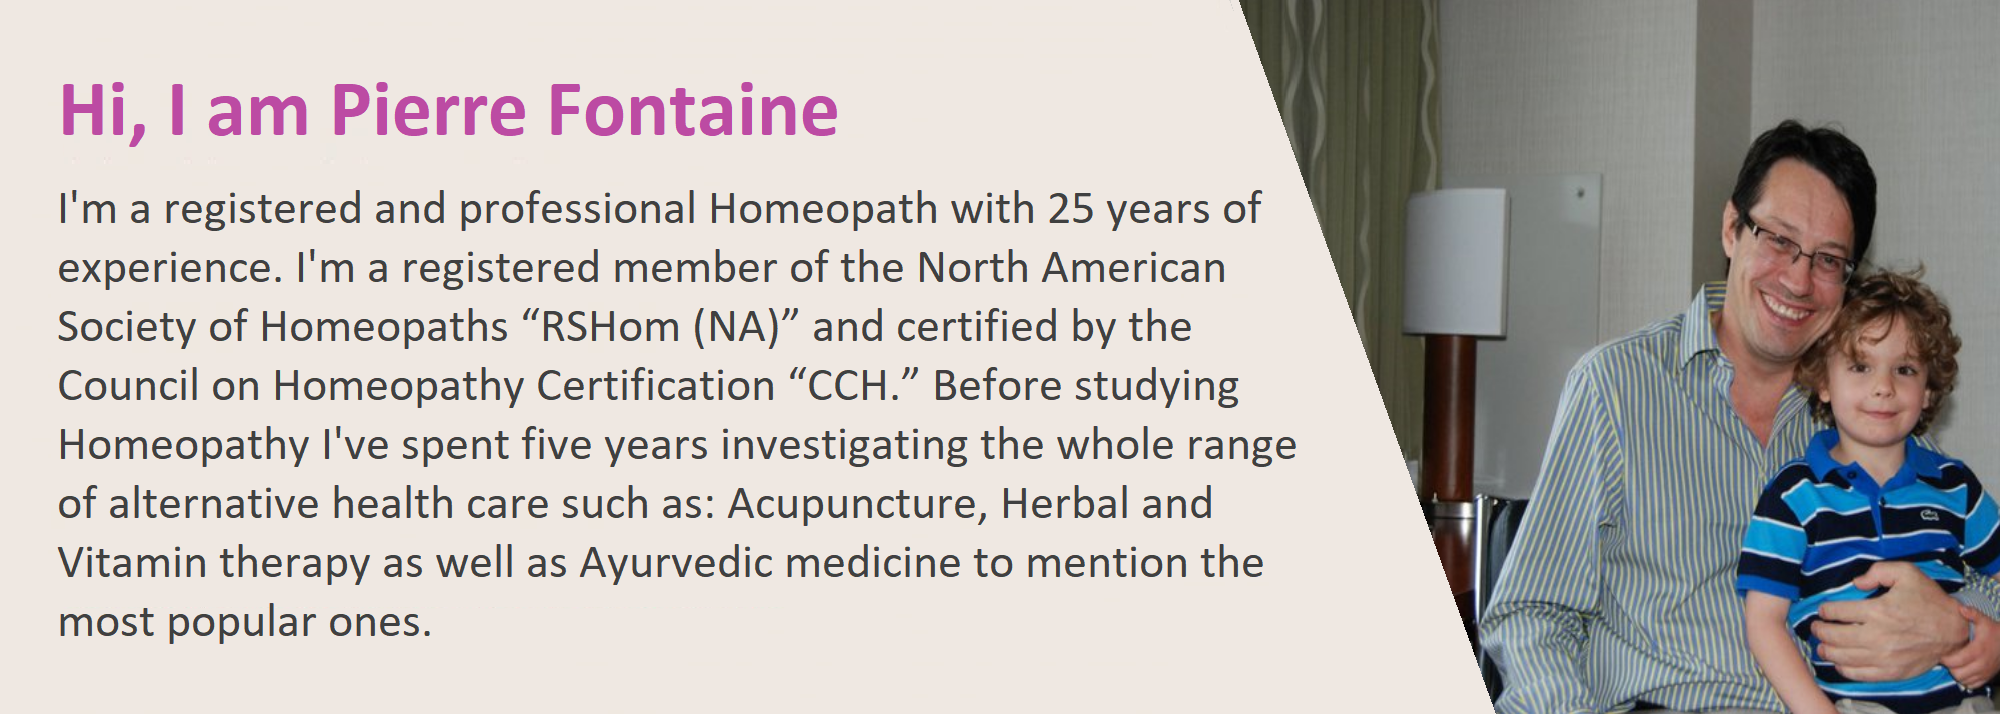 Pierre Fontaine - Certified homeopath and clinic in New York city